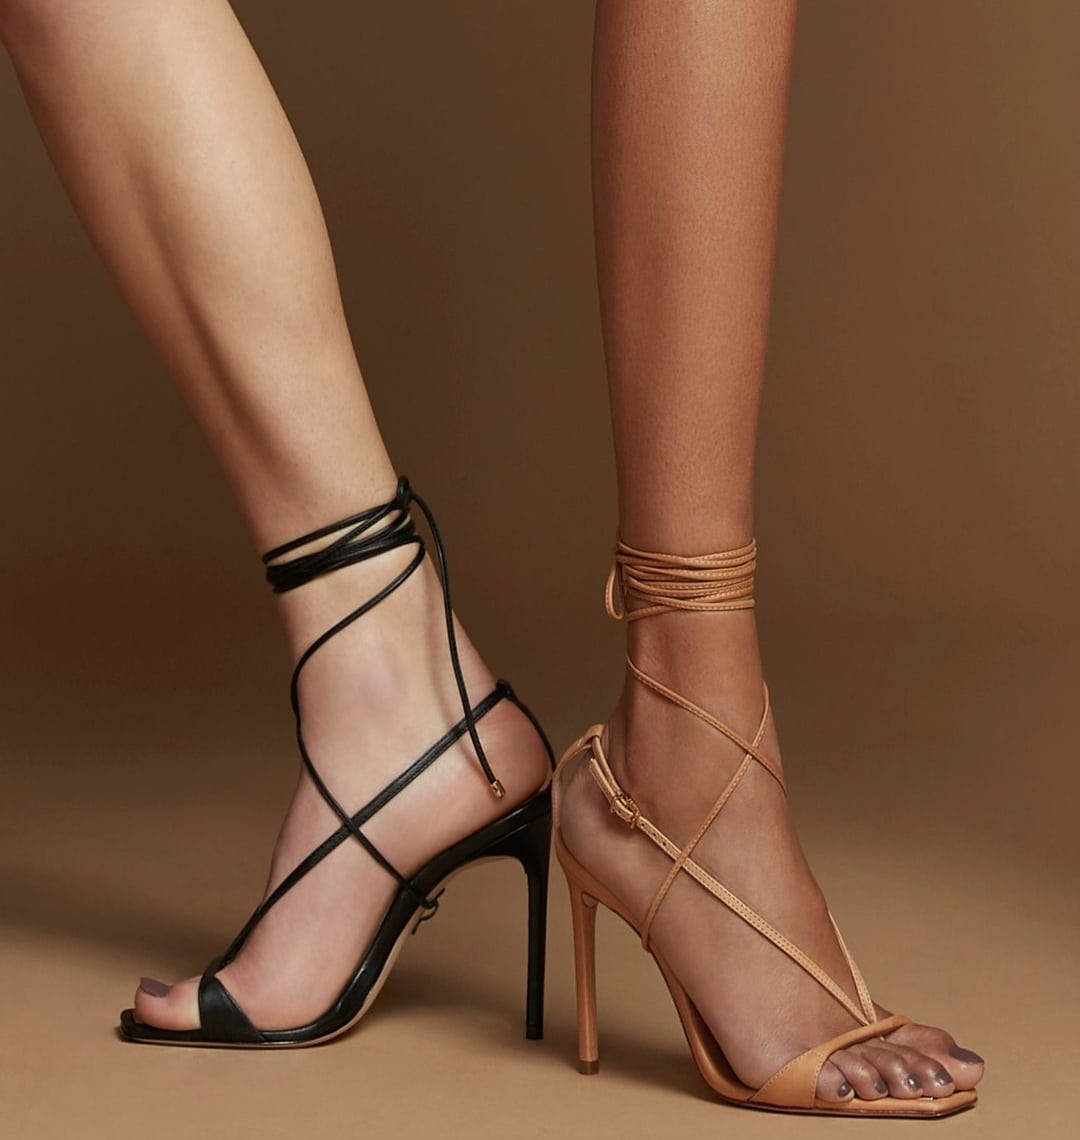 These twisted strap sandals are available in black and honey beige